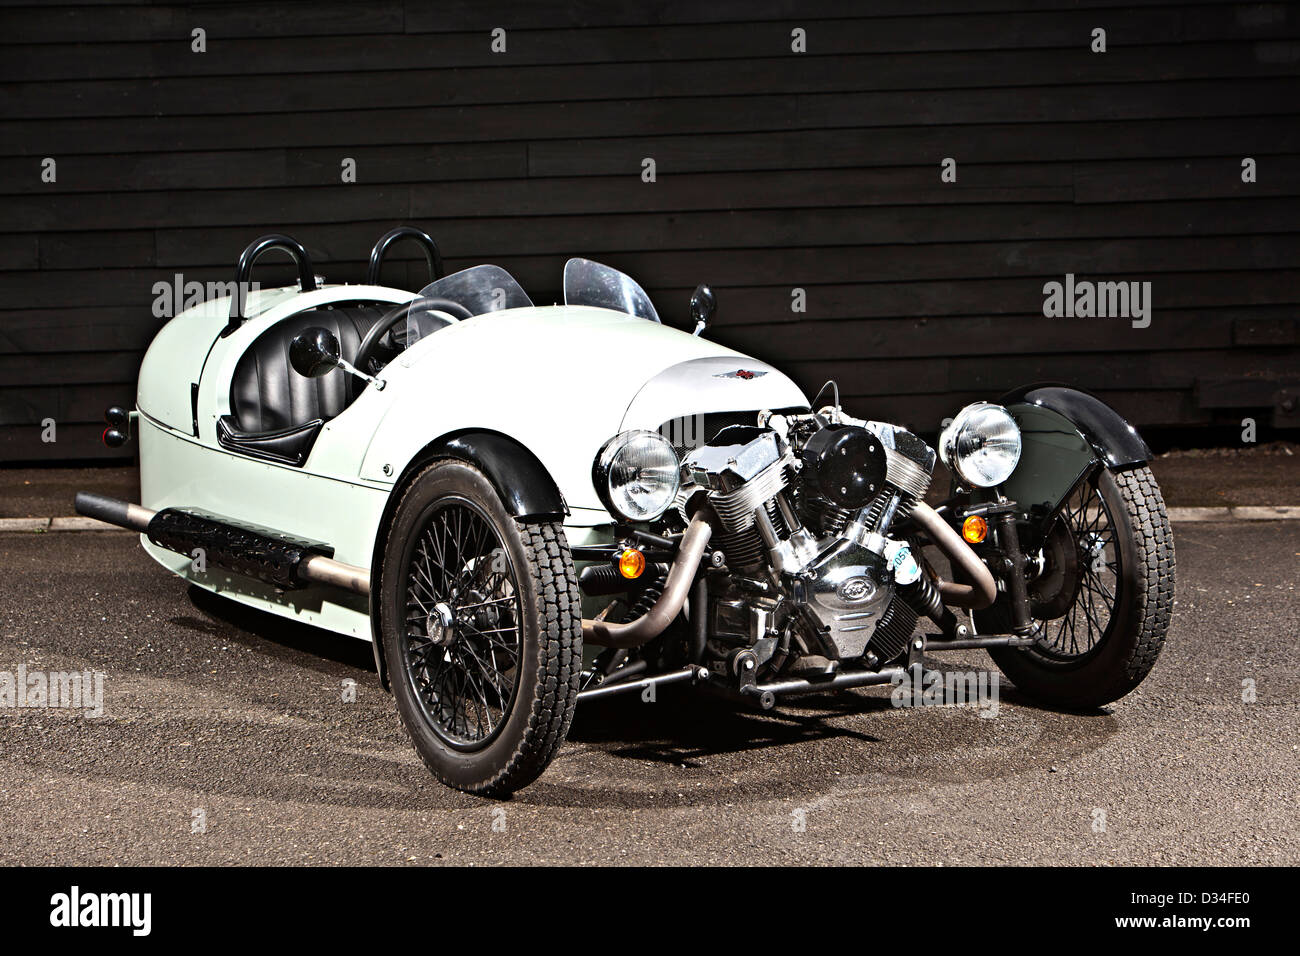 morgan 3 wheeler stock photos morgan 3 wheeler stock images alamy. Black Bedroom Furniture Sets. Home Design Ideas